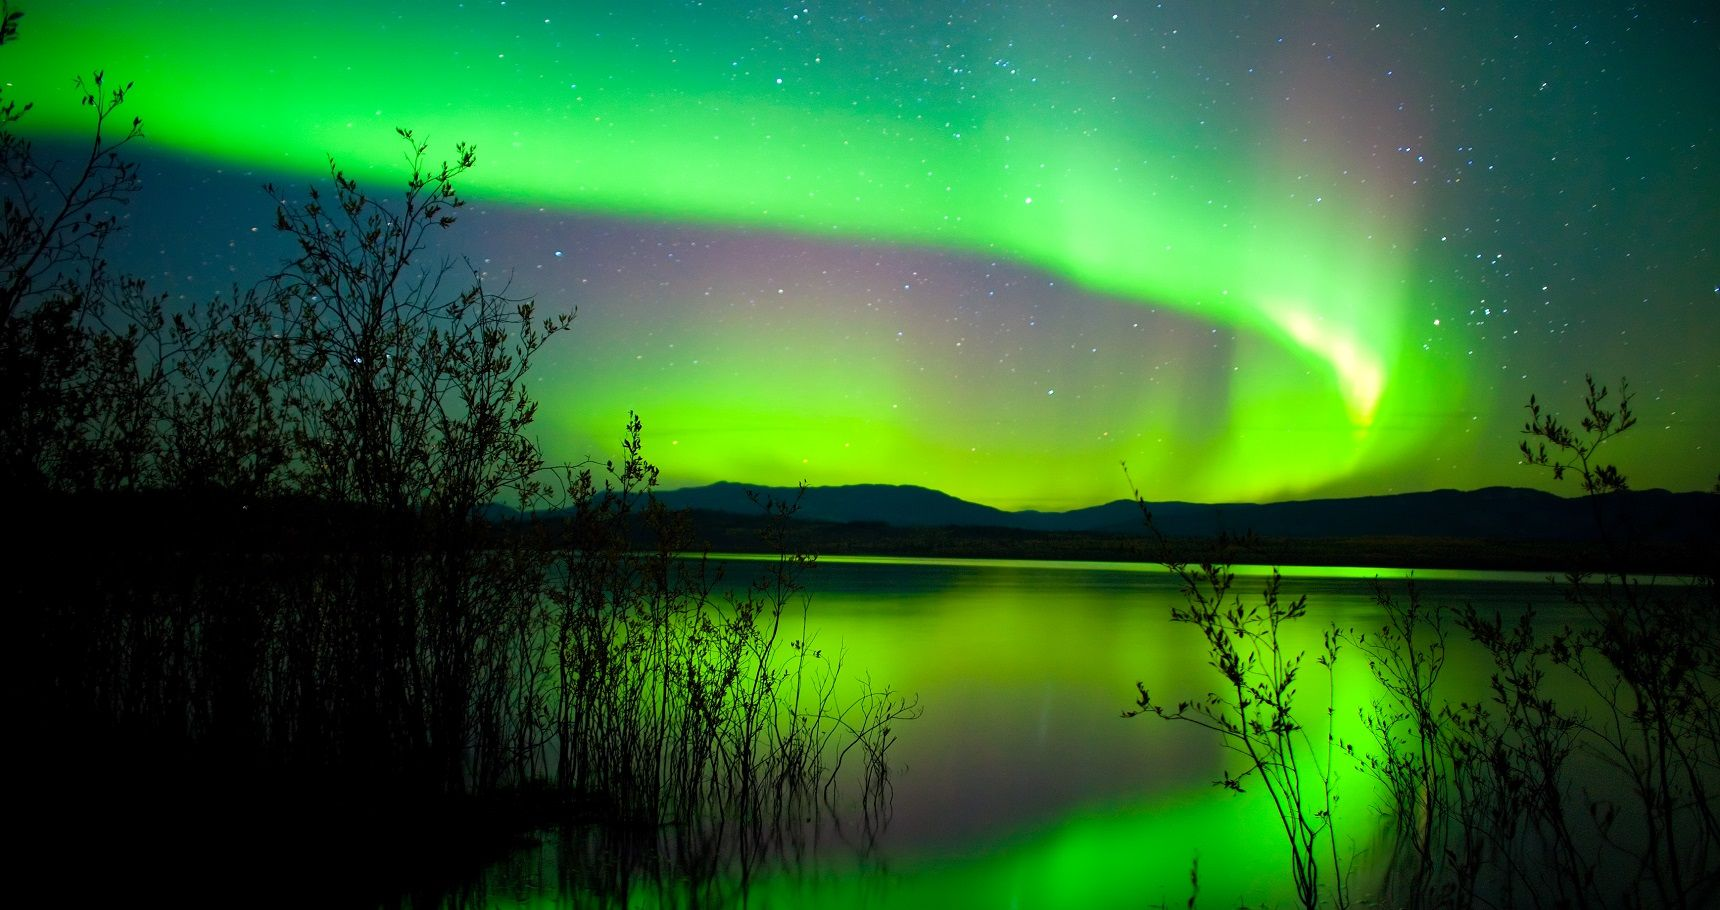 10 Fascinating Things You Didn't Know About The Northern Lights